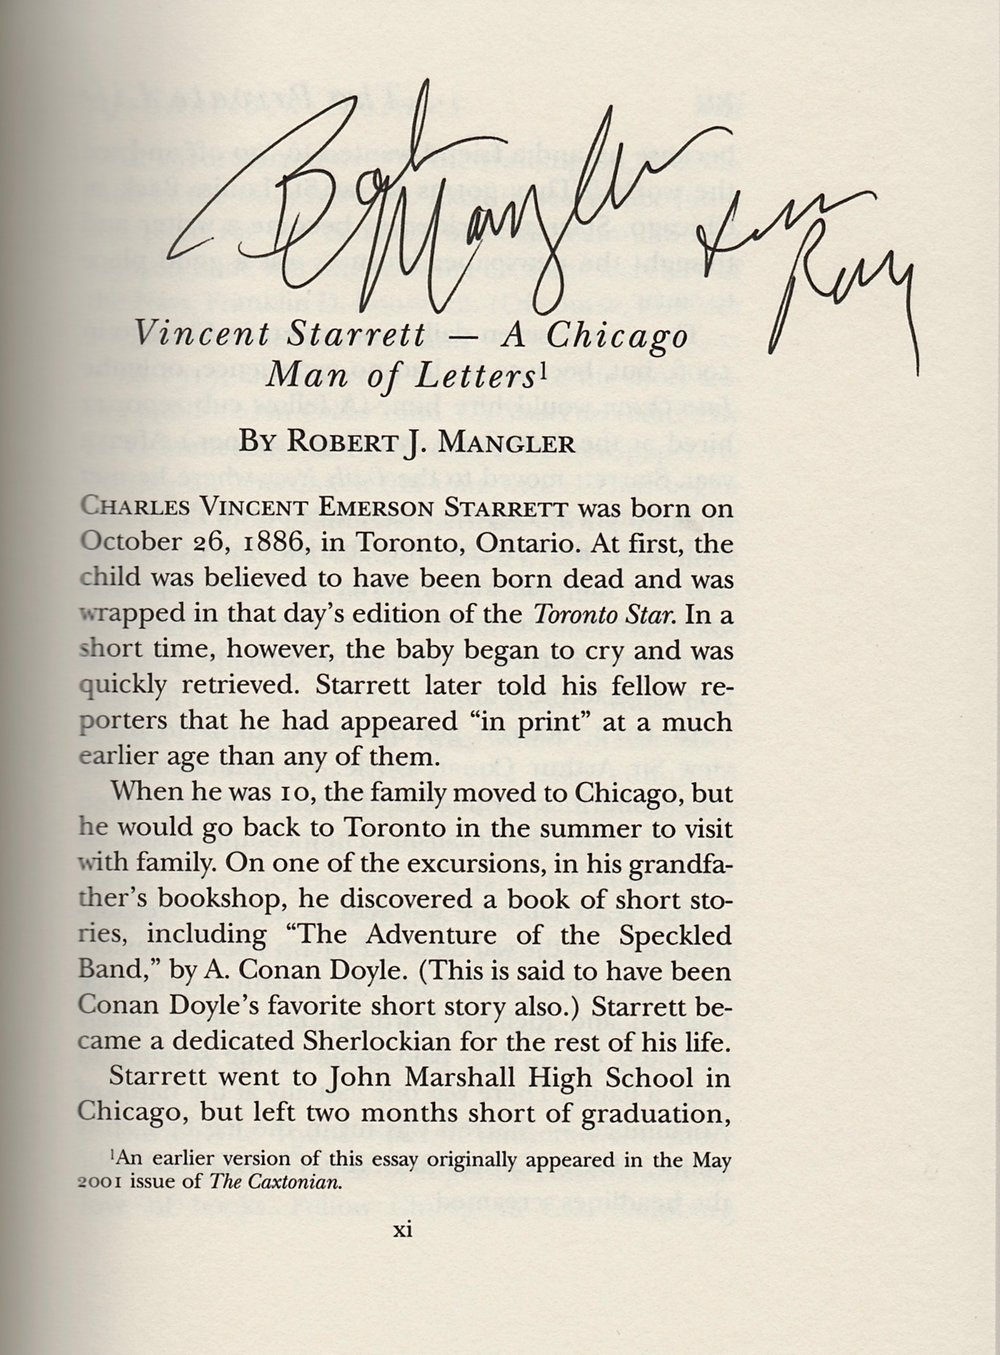 The late Robert Mangler, a friend of Starrett's and long-time leader of The Hounds of the Baskerville  (sic)  signed Ray's copy at at meeting of the Hounds.